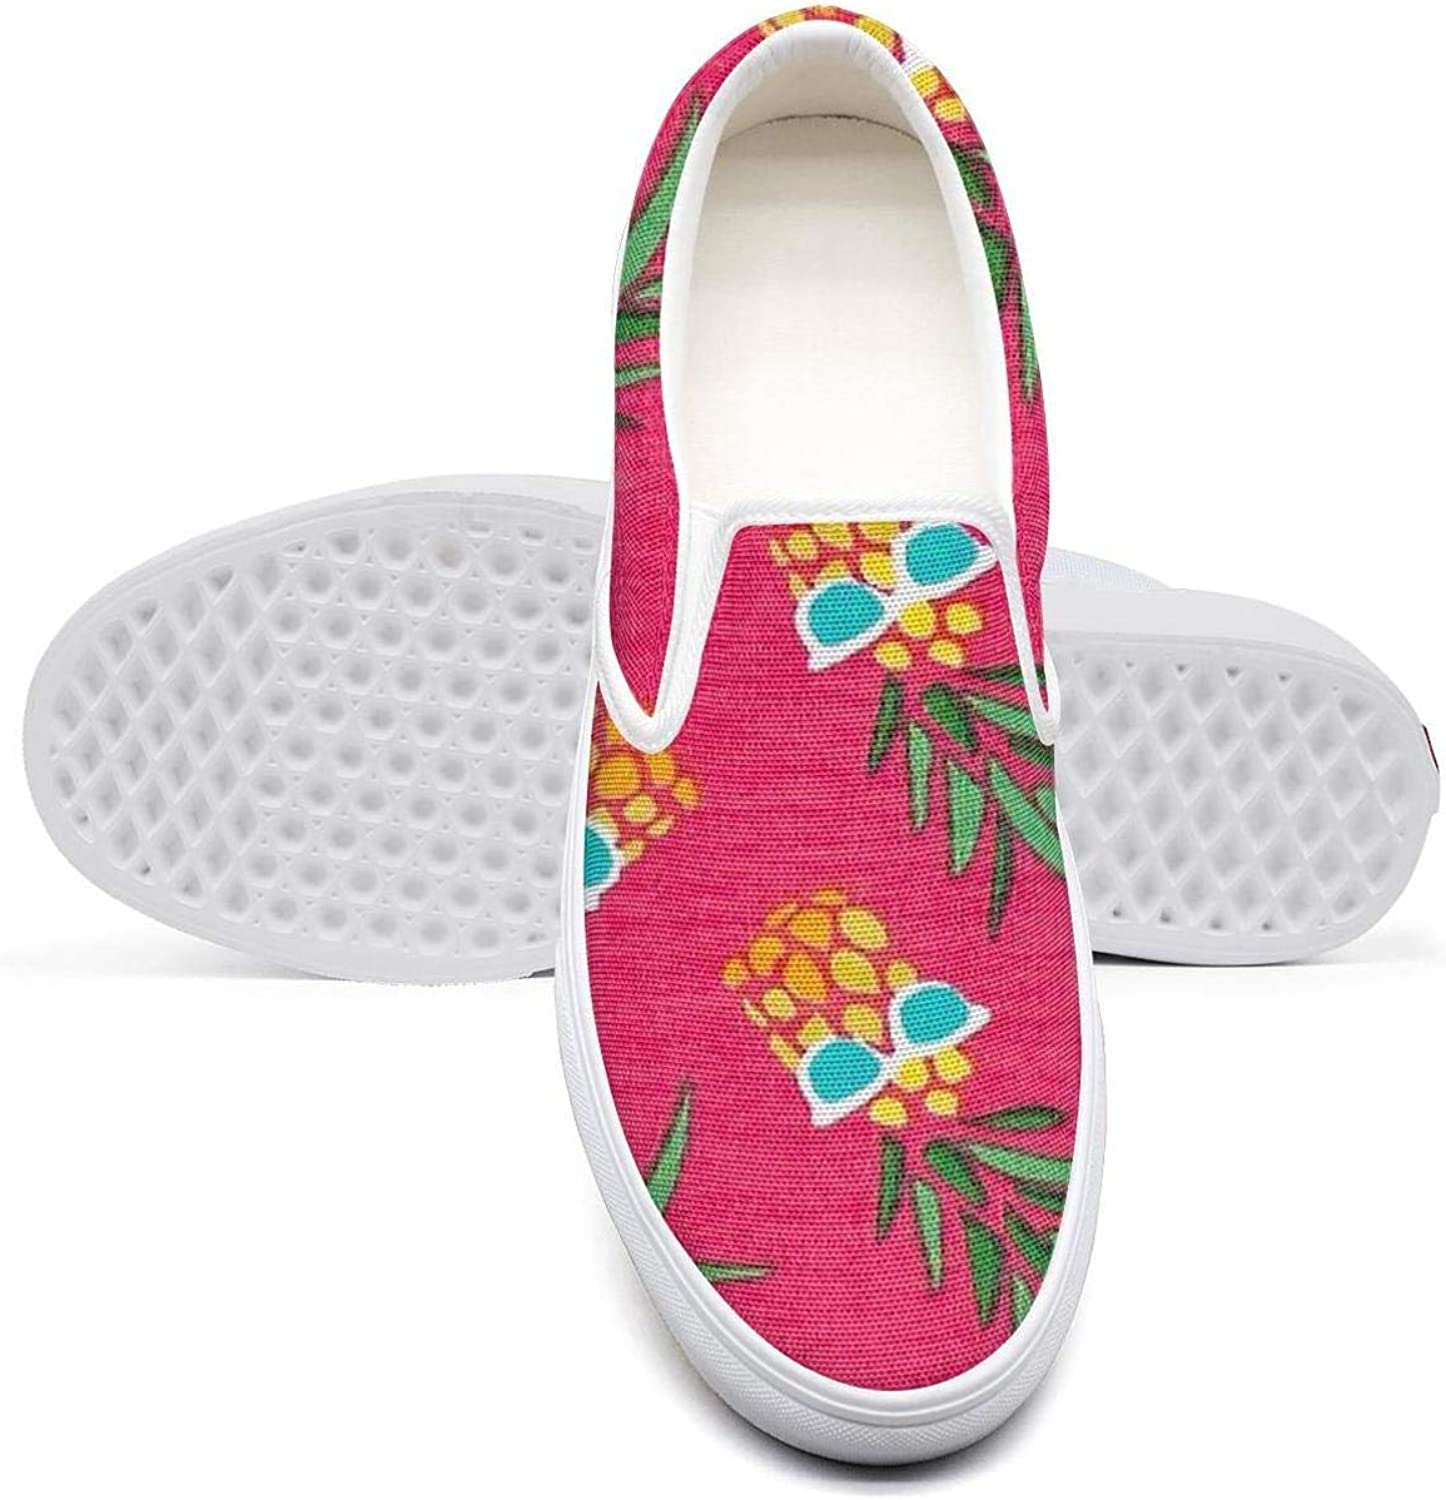 Eredfs Pineapples with Glasses Pink Women Low Cut Non-Slip wear-Resistant Rubber Sole Footwear